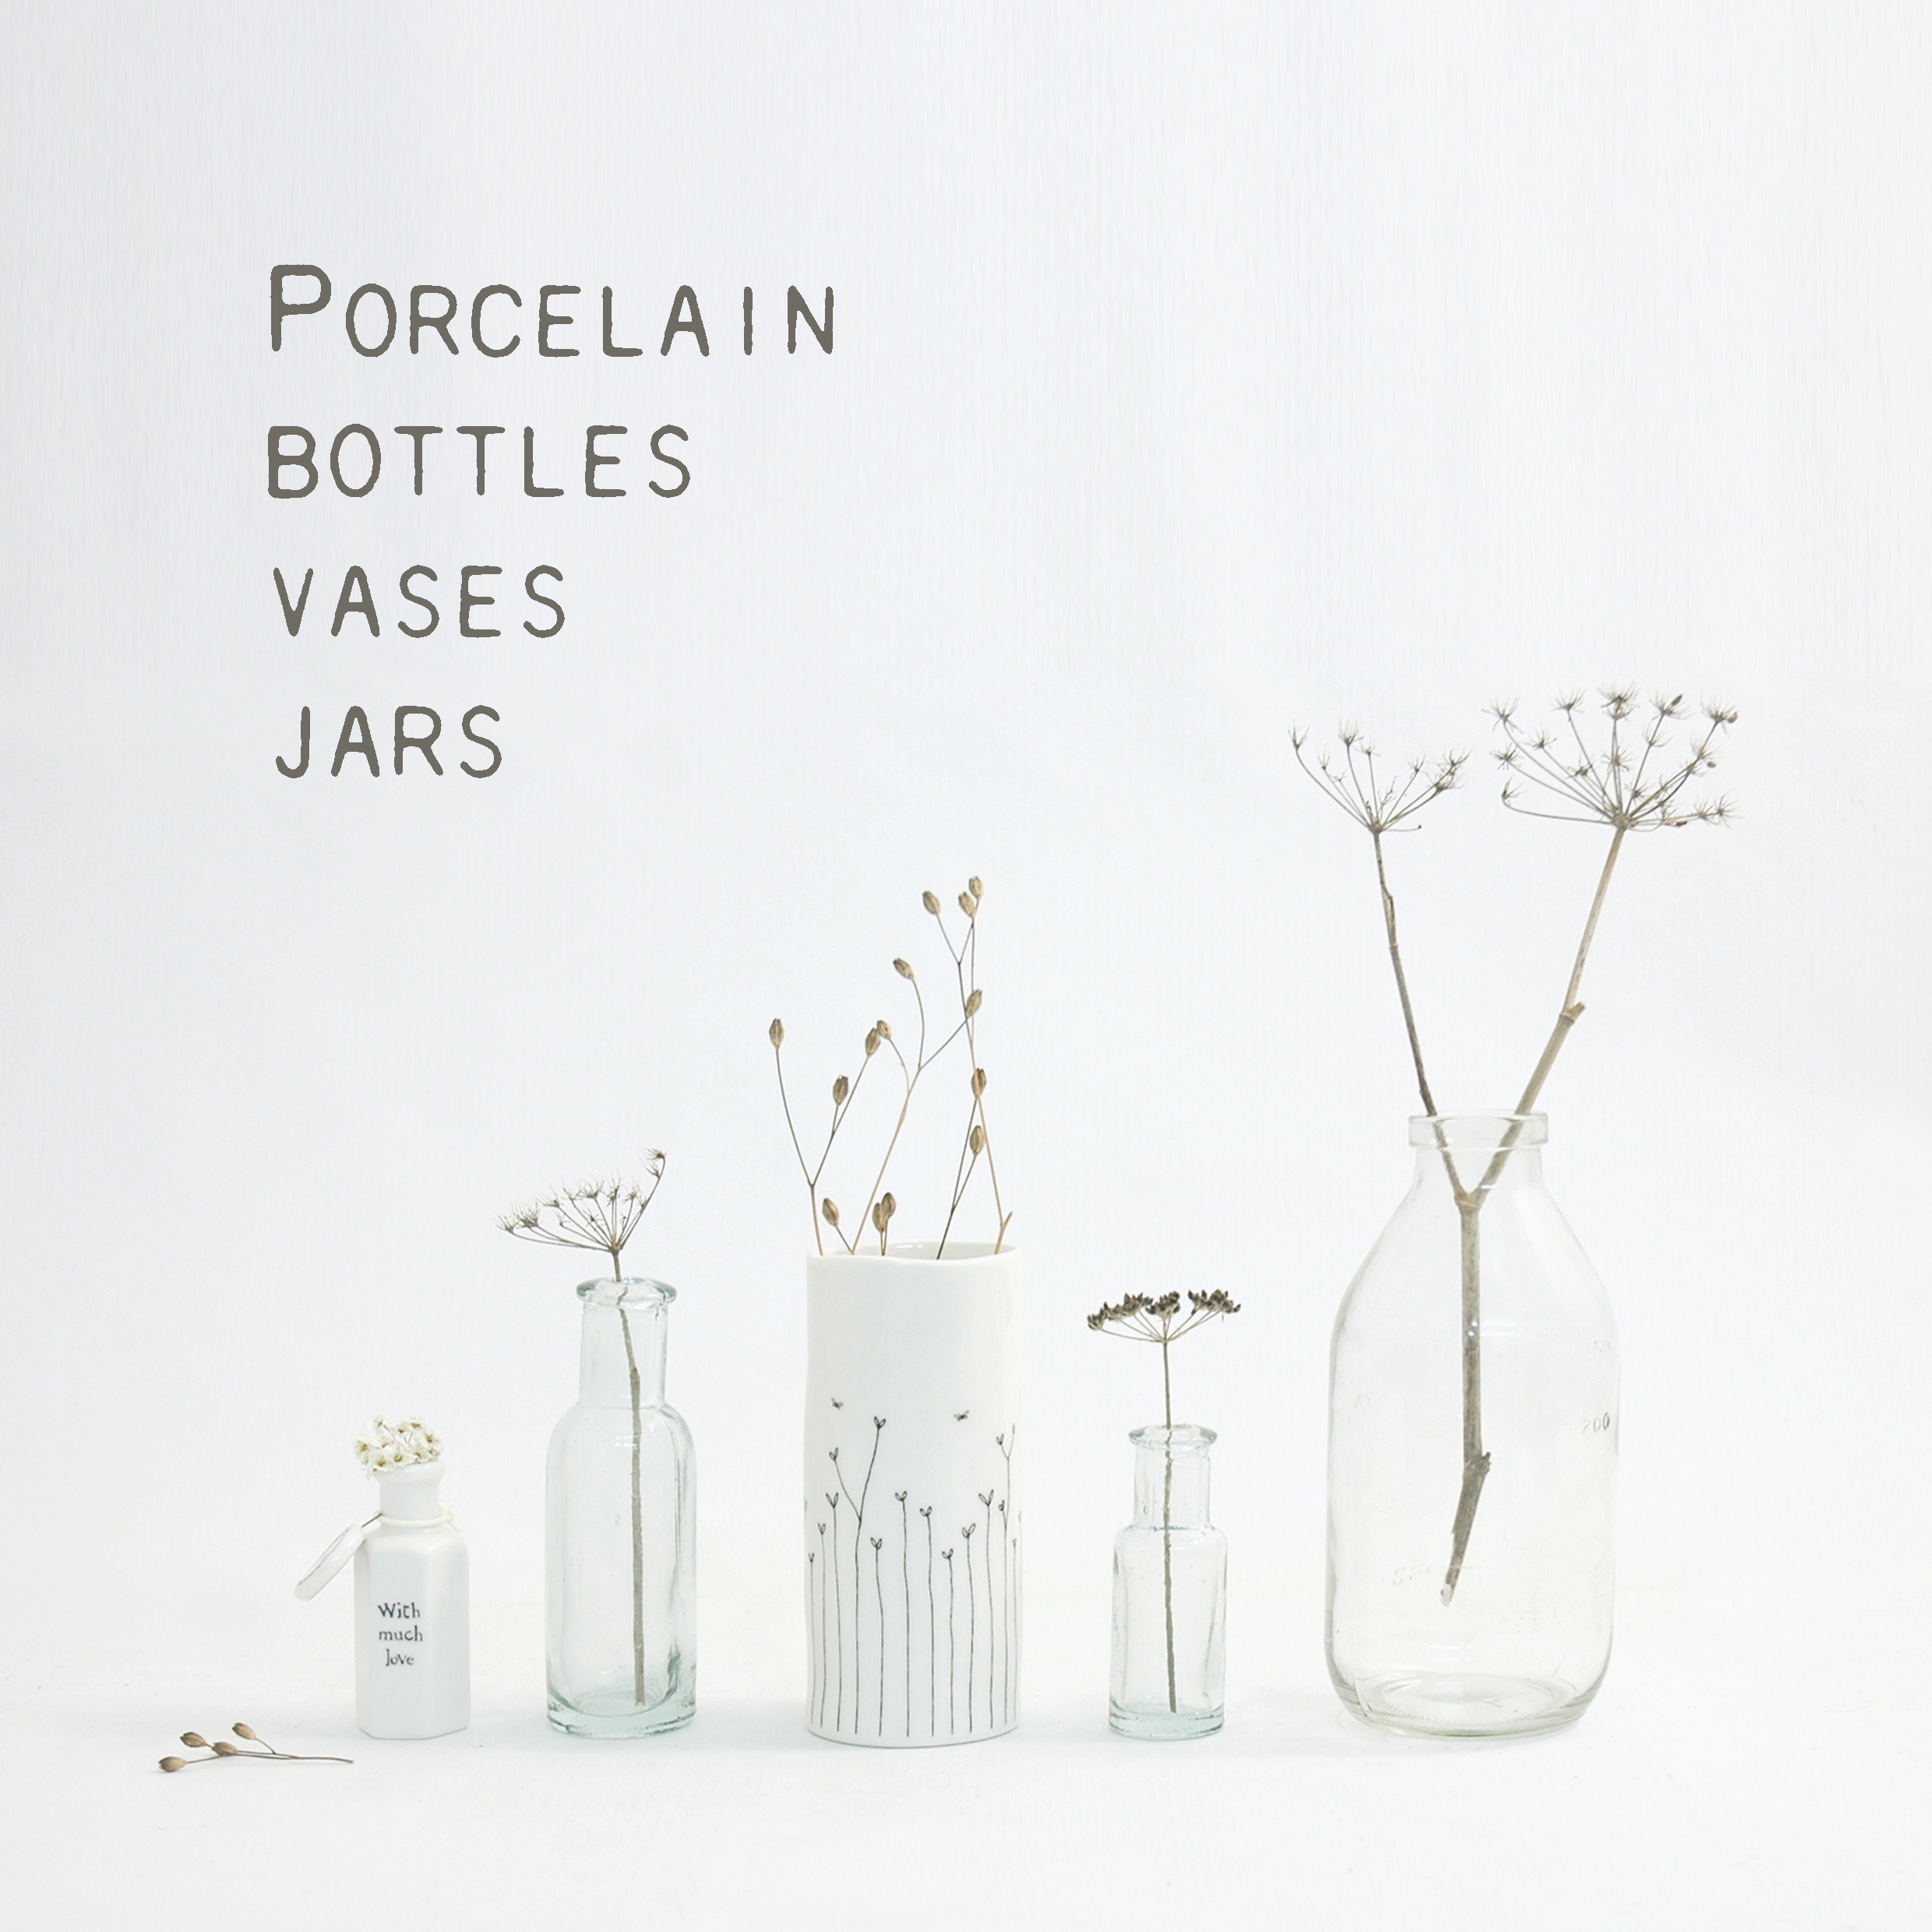 Vases, Jars & Bottles